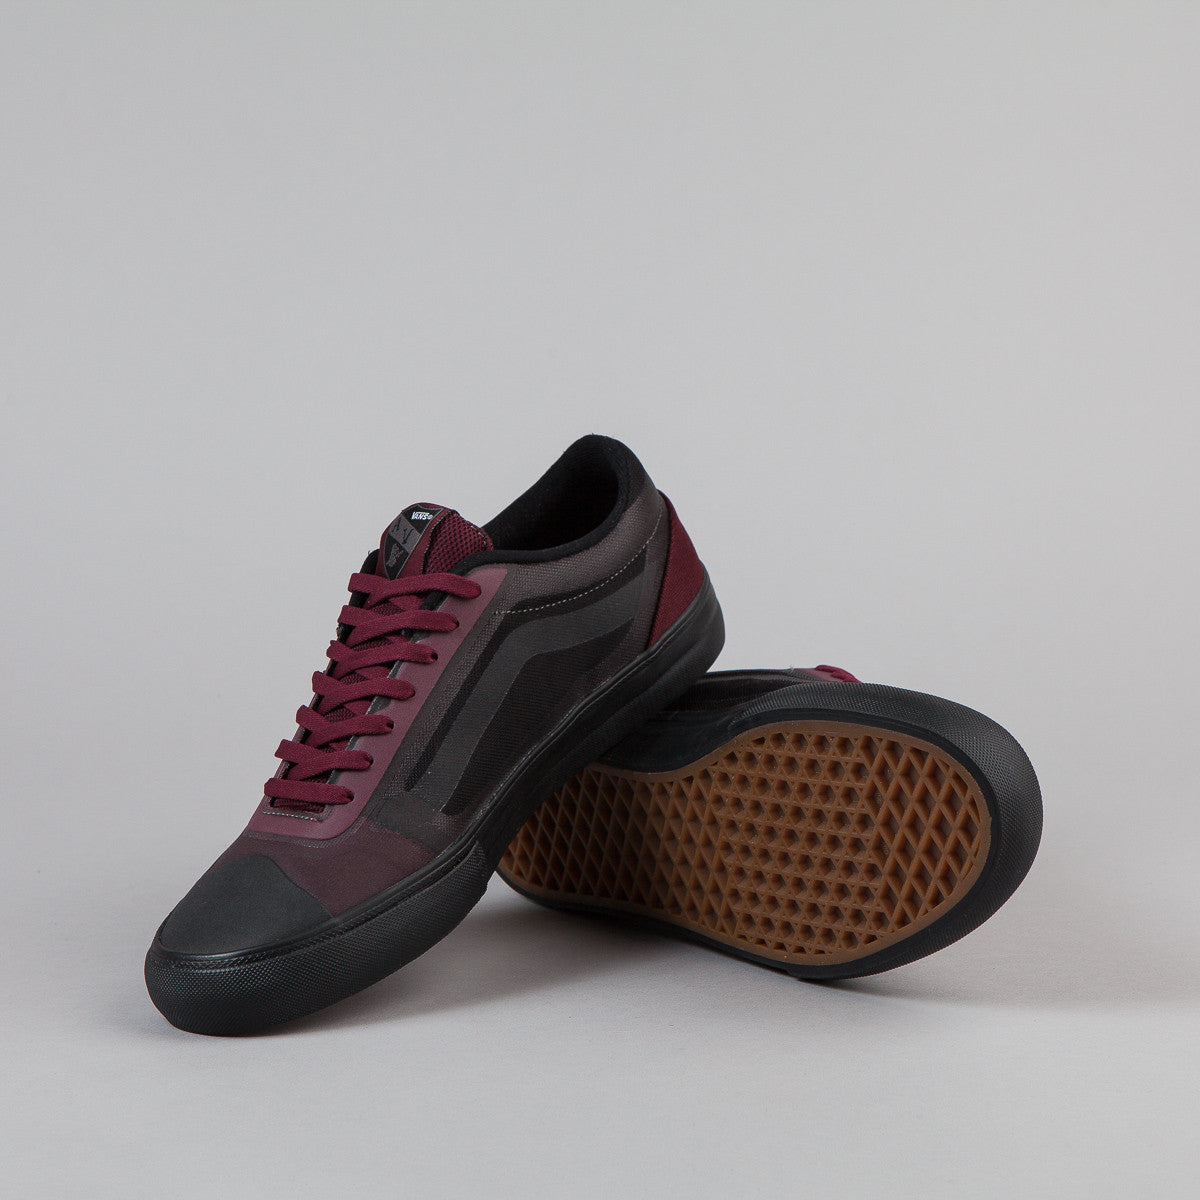 Vans AV Rapidweld Pro Shoes - Port / Black